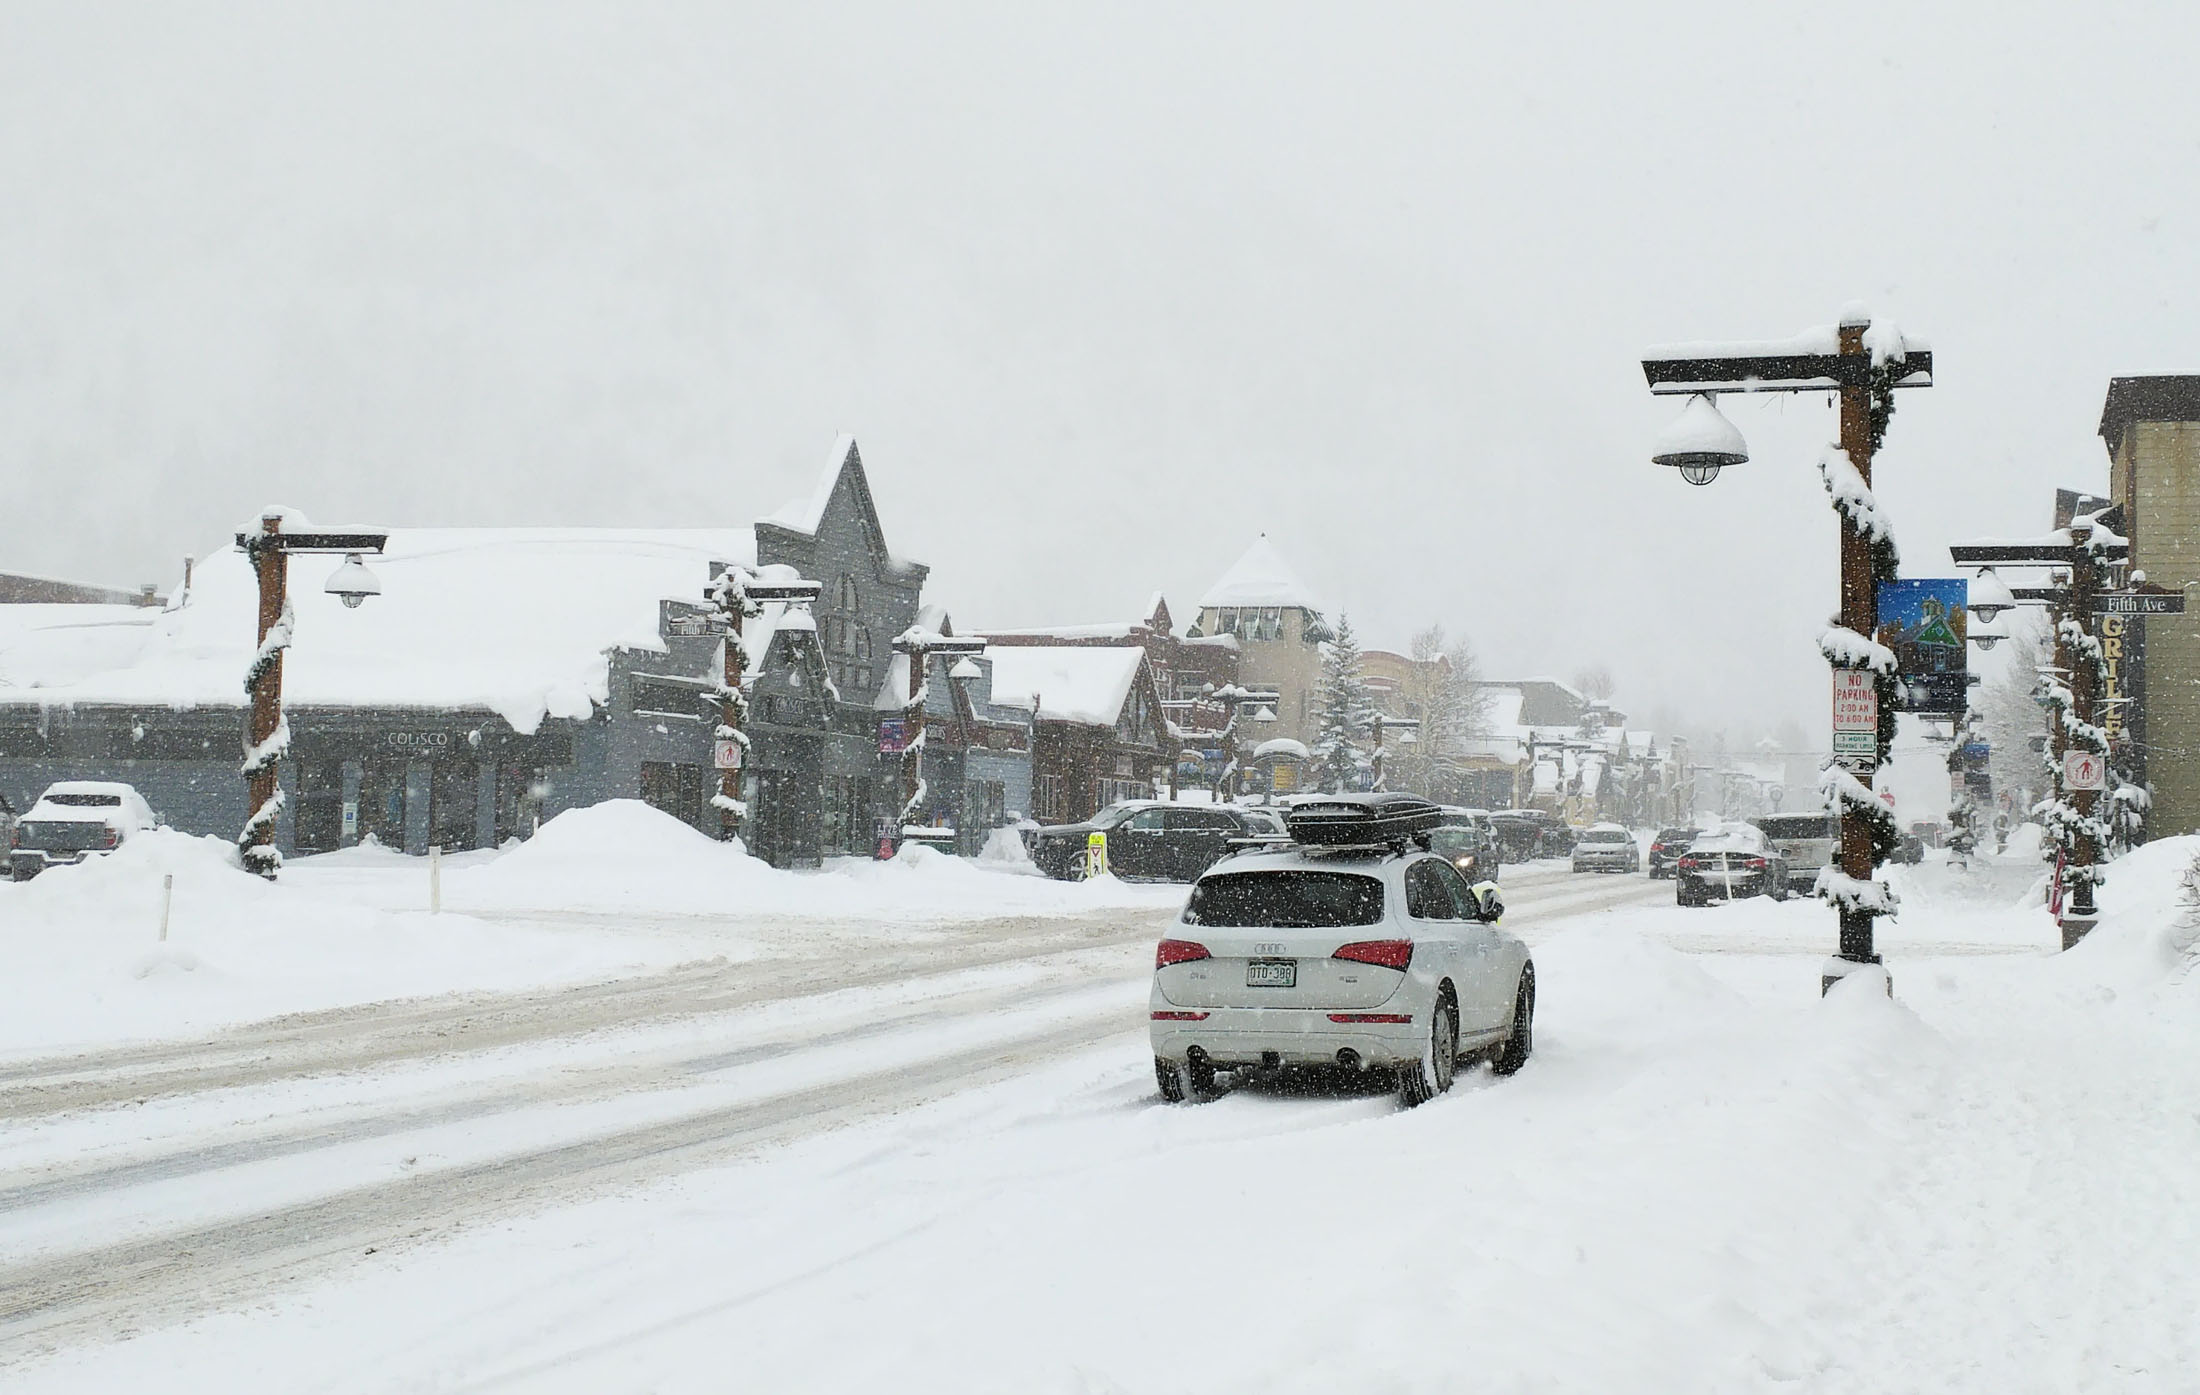 Winter road conditions in and around Frisco, Colo., were a concern in getting to ski resorts on snowy days. (Craig Davis/Craigslegztravels.com)